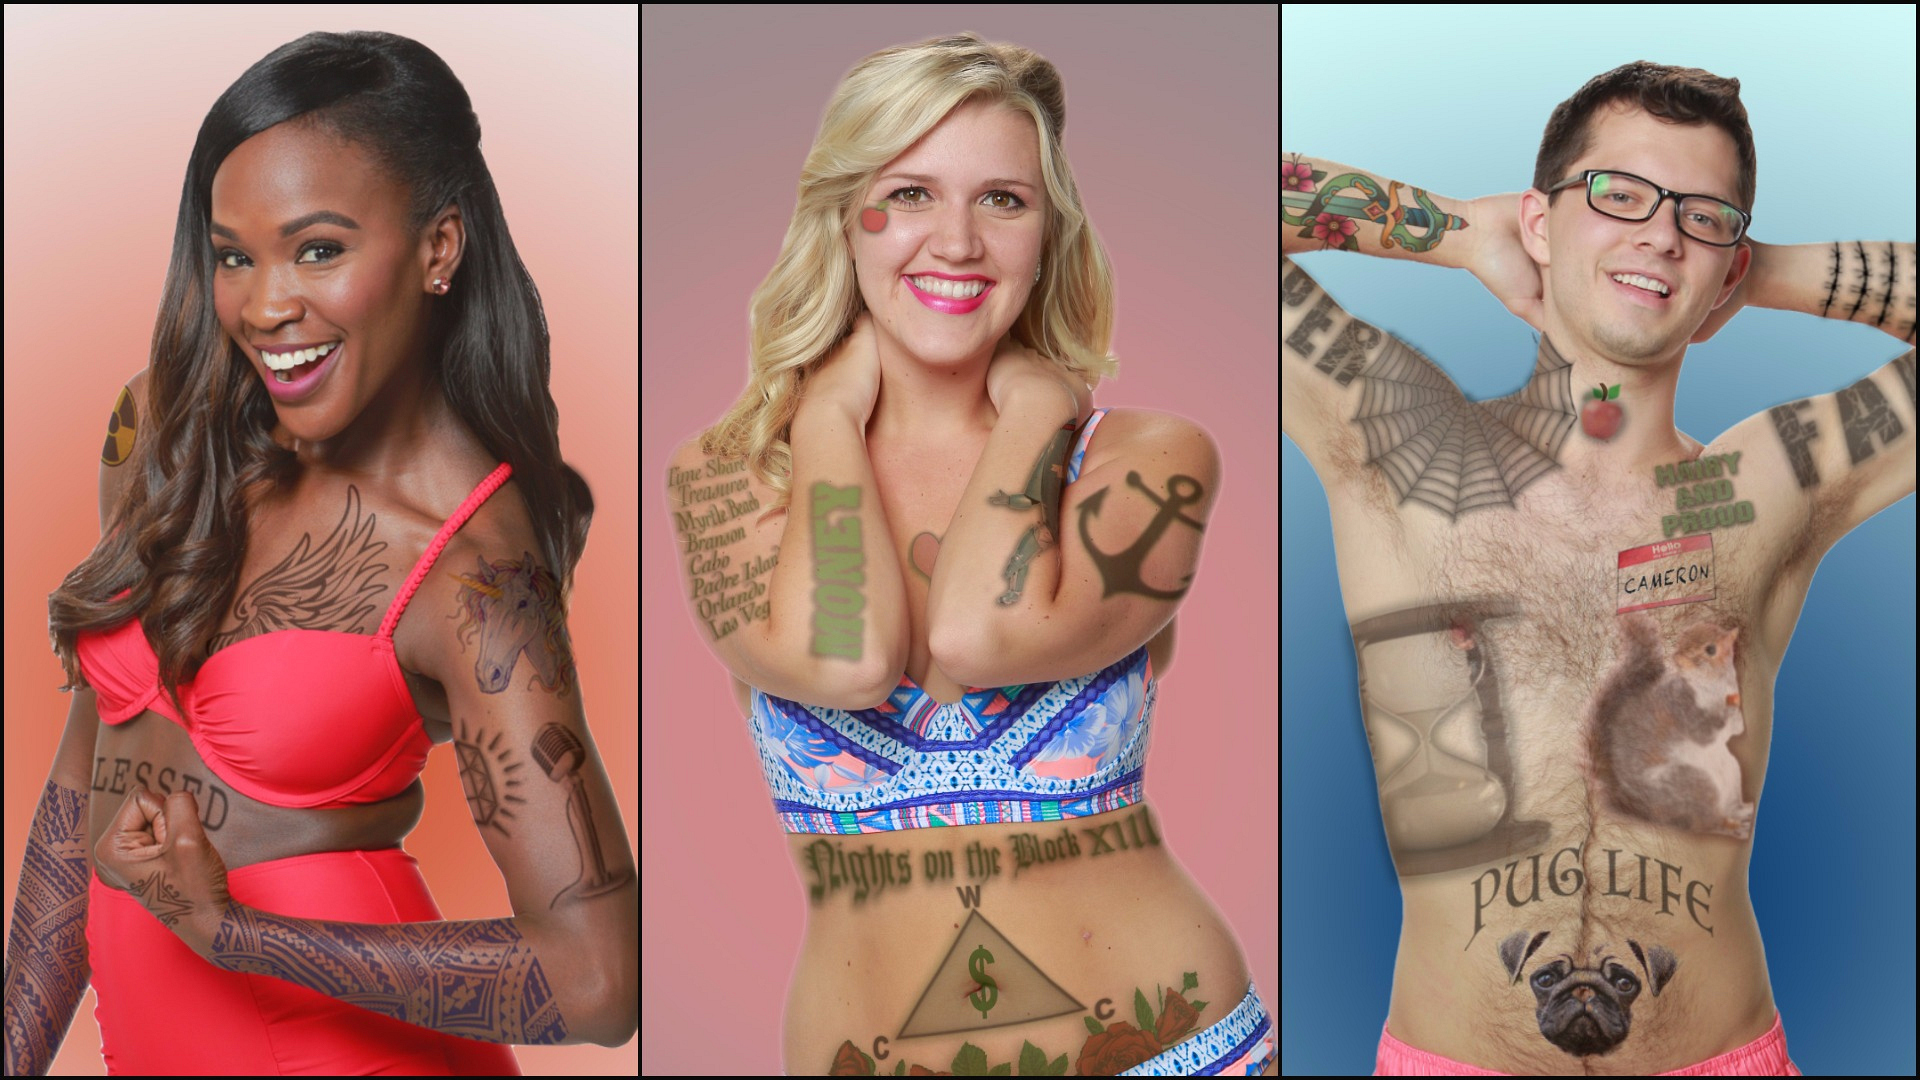 BB19 evictees Dominique, Jillian, and Cameron flaunt some funny and fierce tattoos